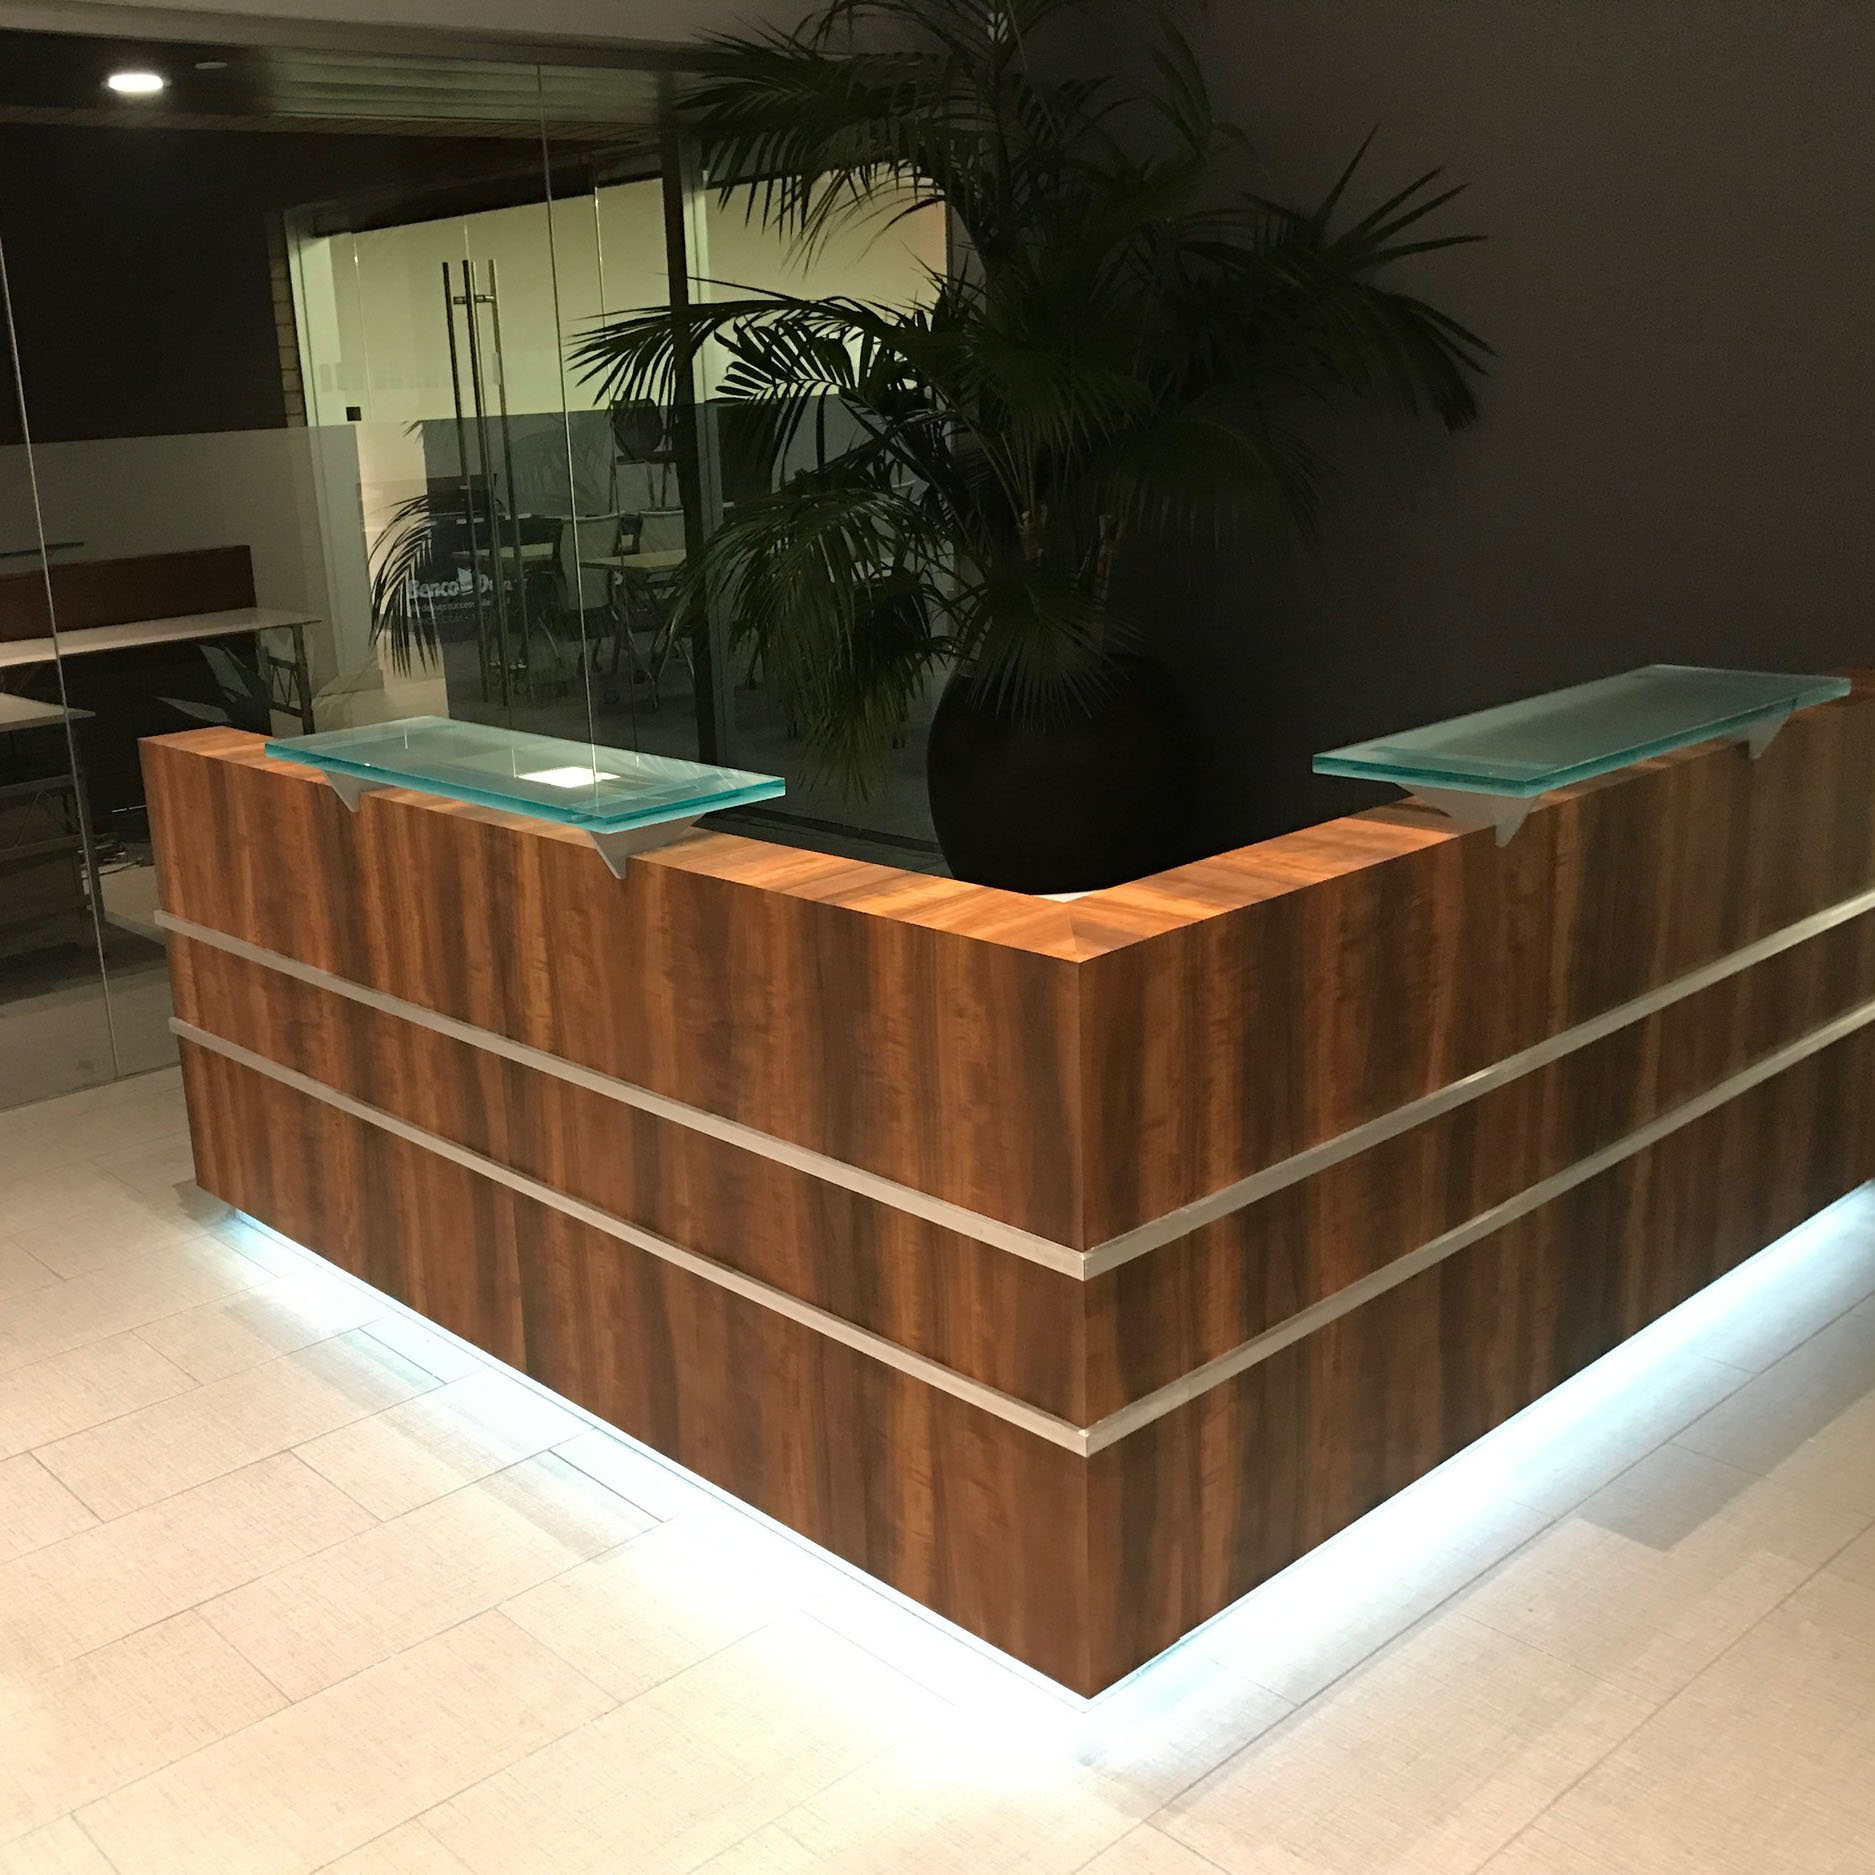 High-Craft Reception Desks - A custom reception desk featured in showrooms across the nation